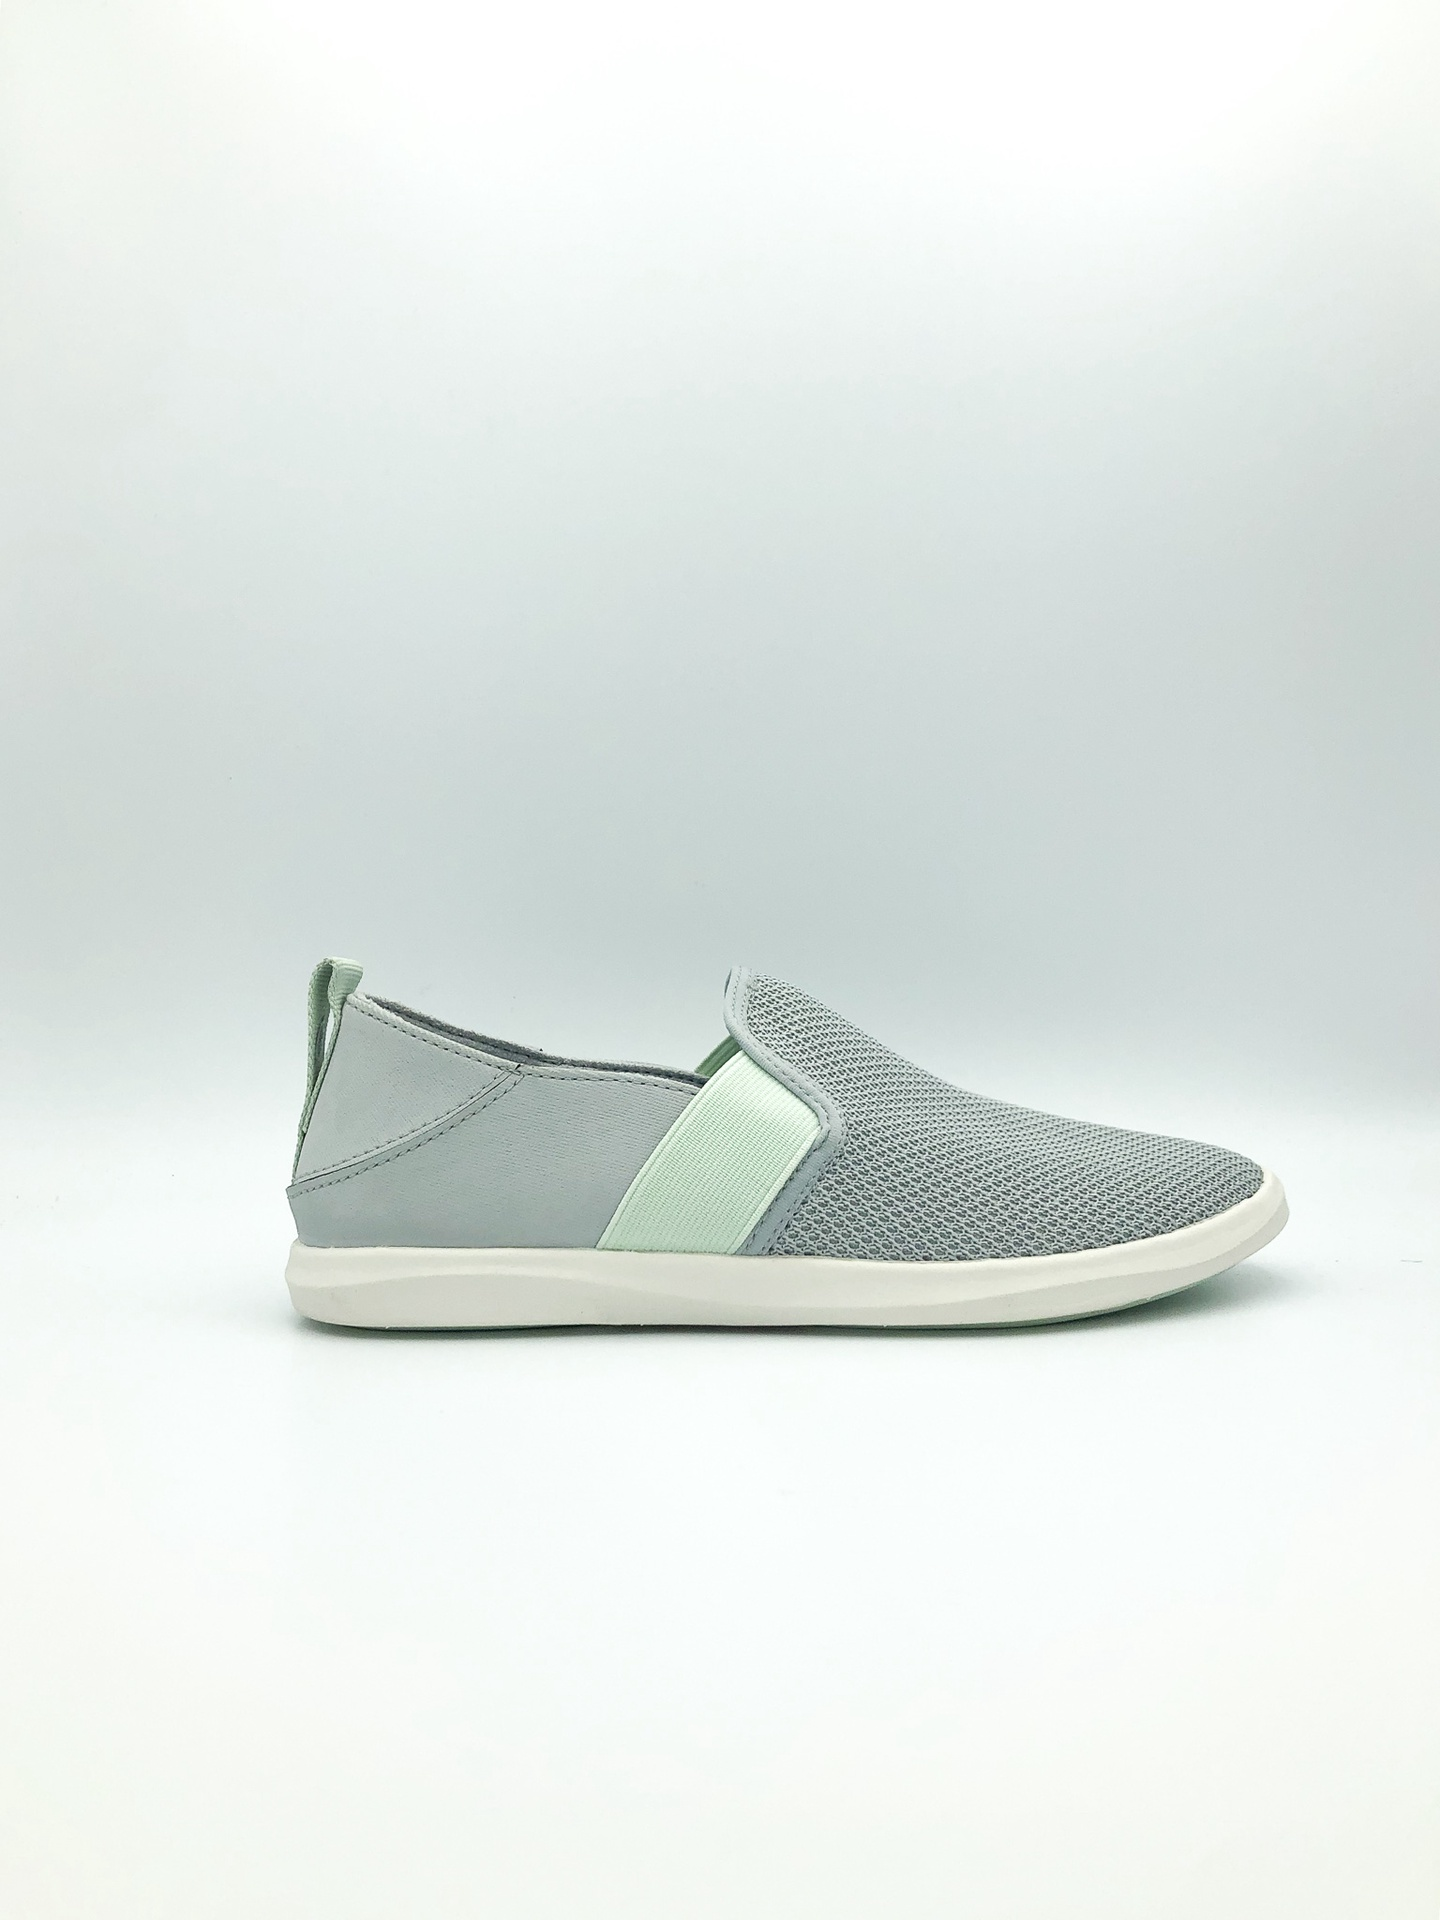 OLUKAI - HALE'IWA IN PALE GREY/PALE MOSS